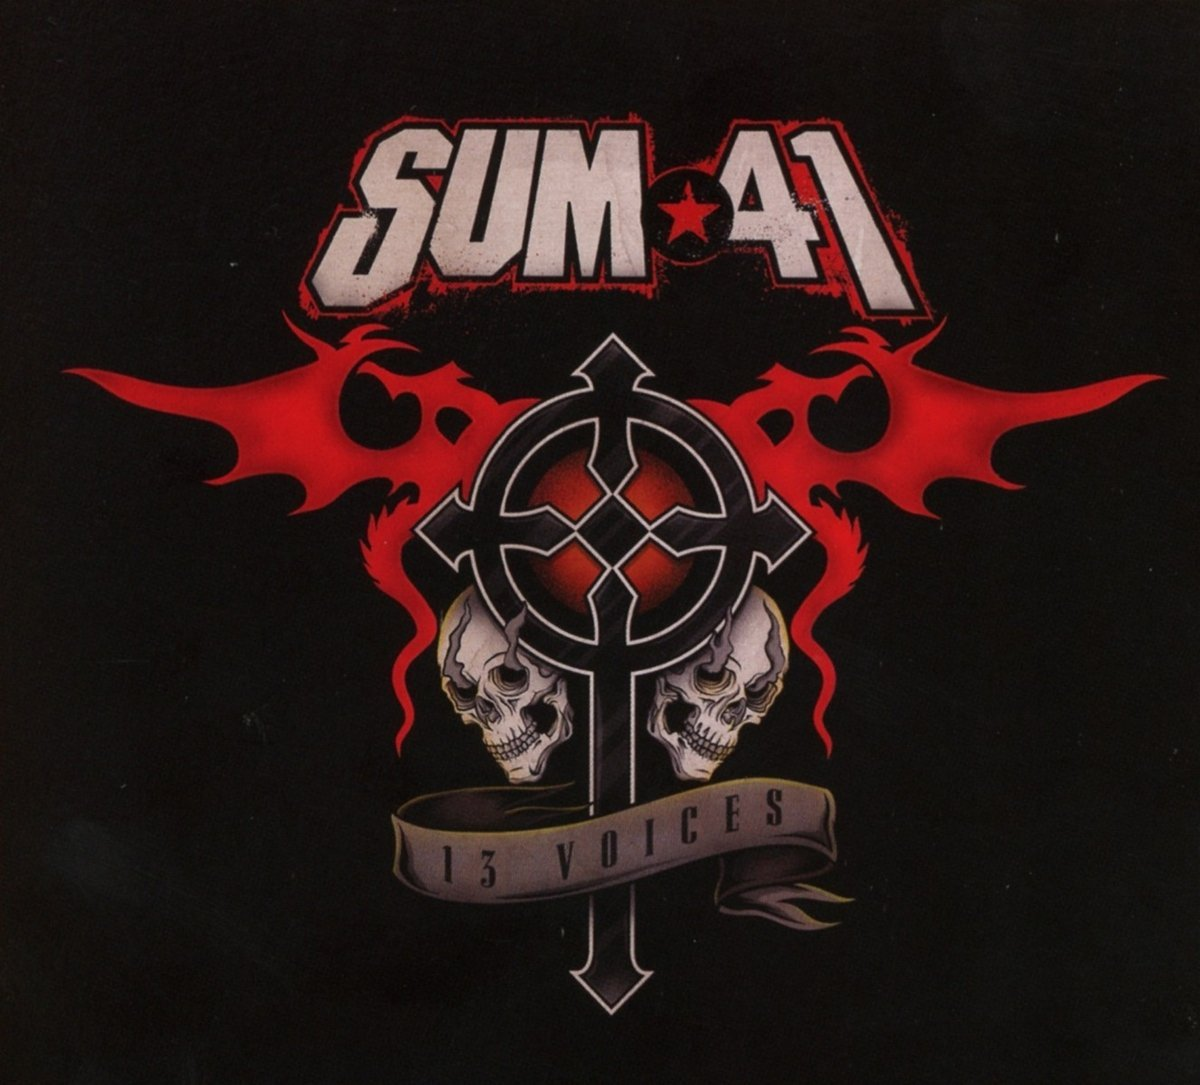 13 Voices [Audio CD] Sum 41